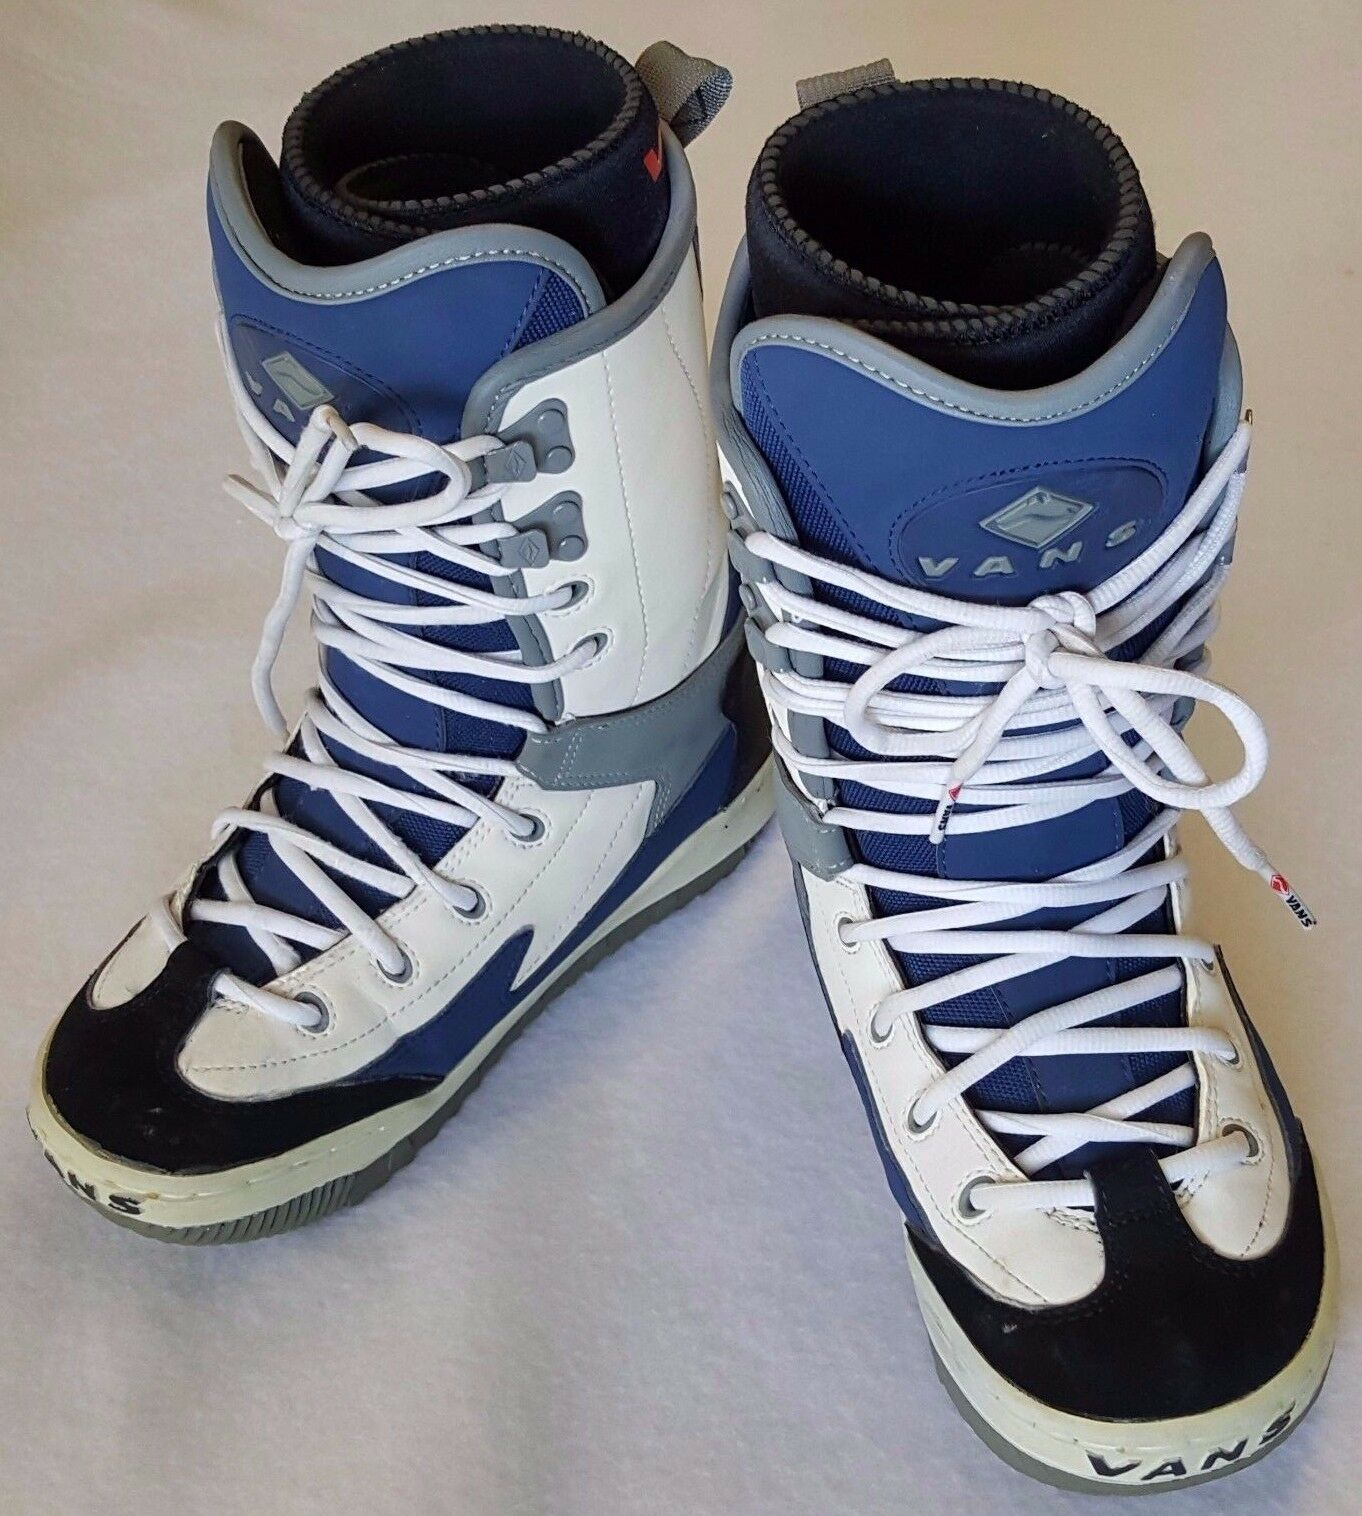 Vans Dino 2 Snowboard Boots Womens Size US 7 bluee White Lace Up with Wrap Liner